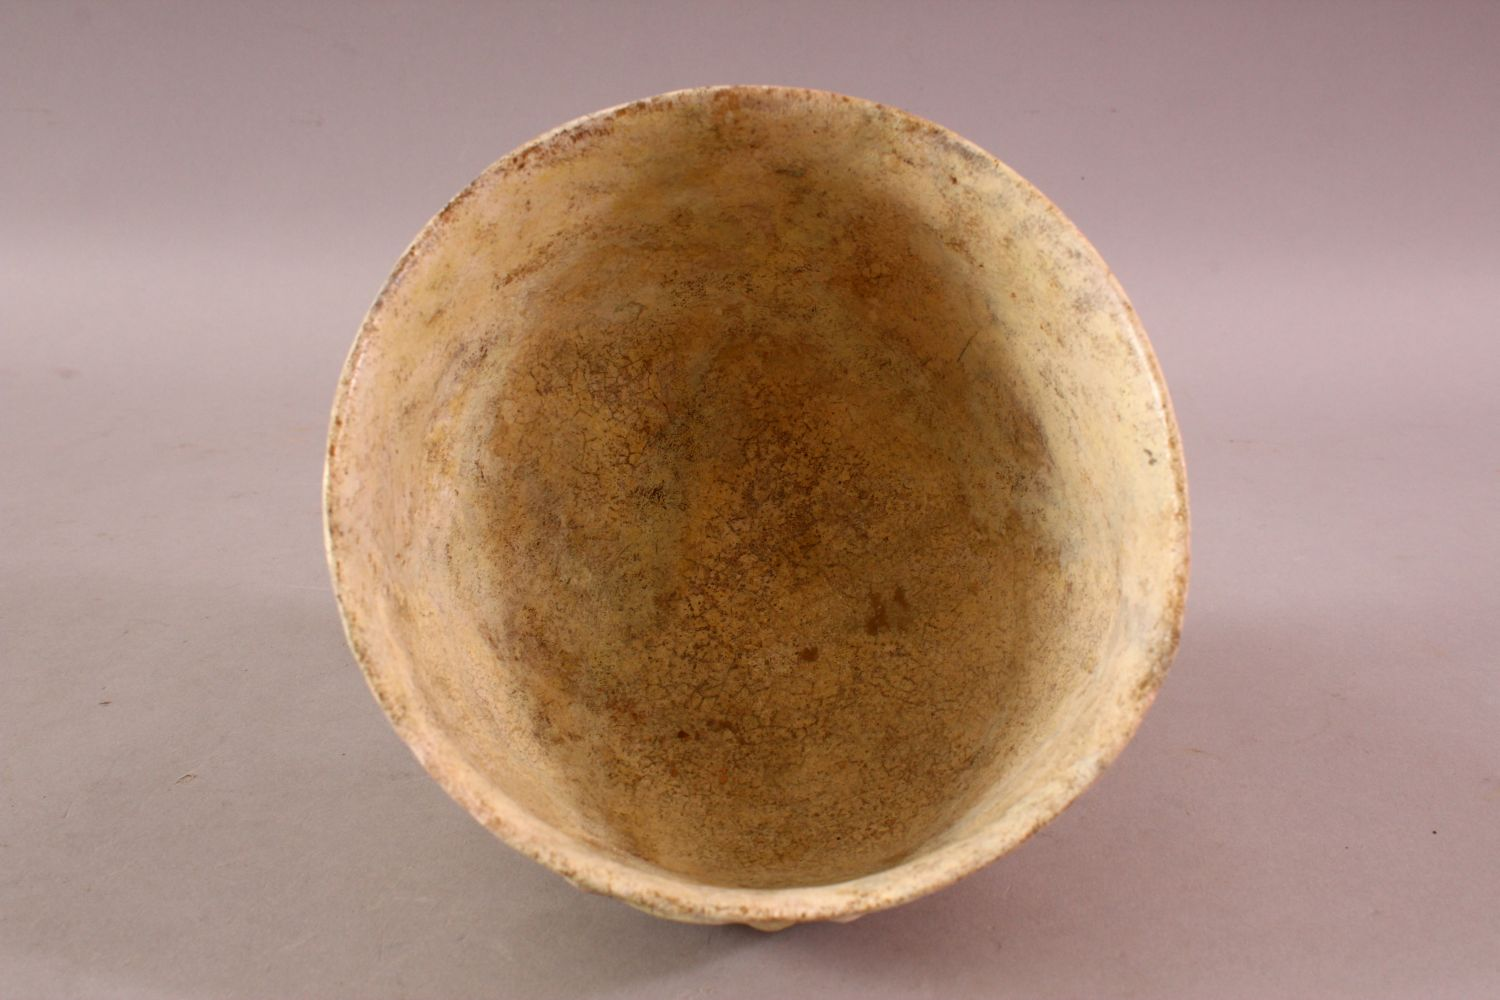 A 12TH CENTURY KUFIC SCRIPT GLAZED POTTERY BOWL, the exterior with moulded script, 15cm diameter, - Image 5 of 6